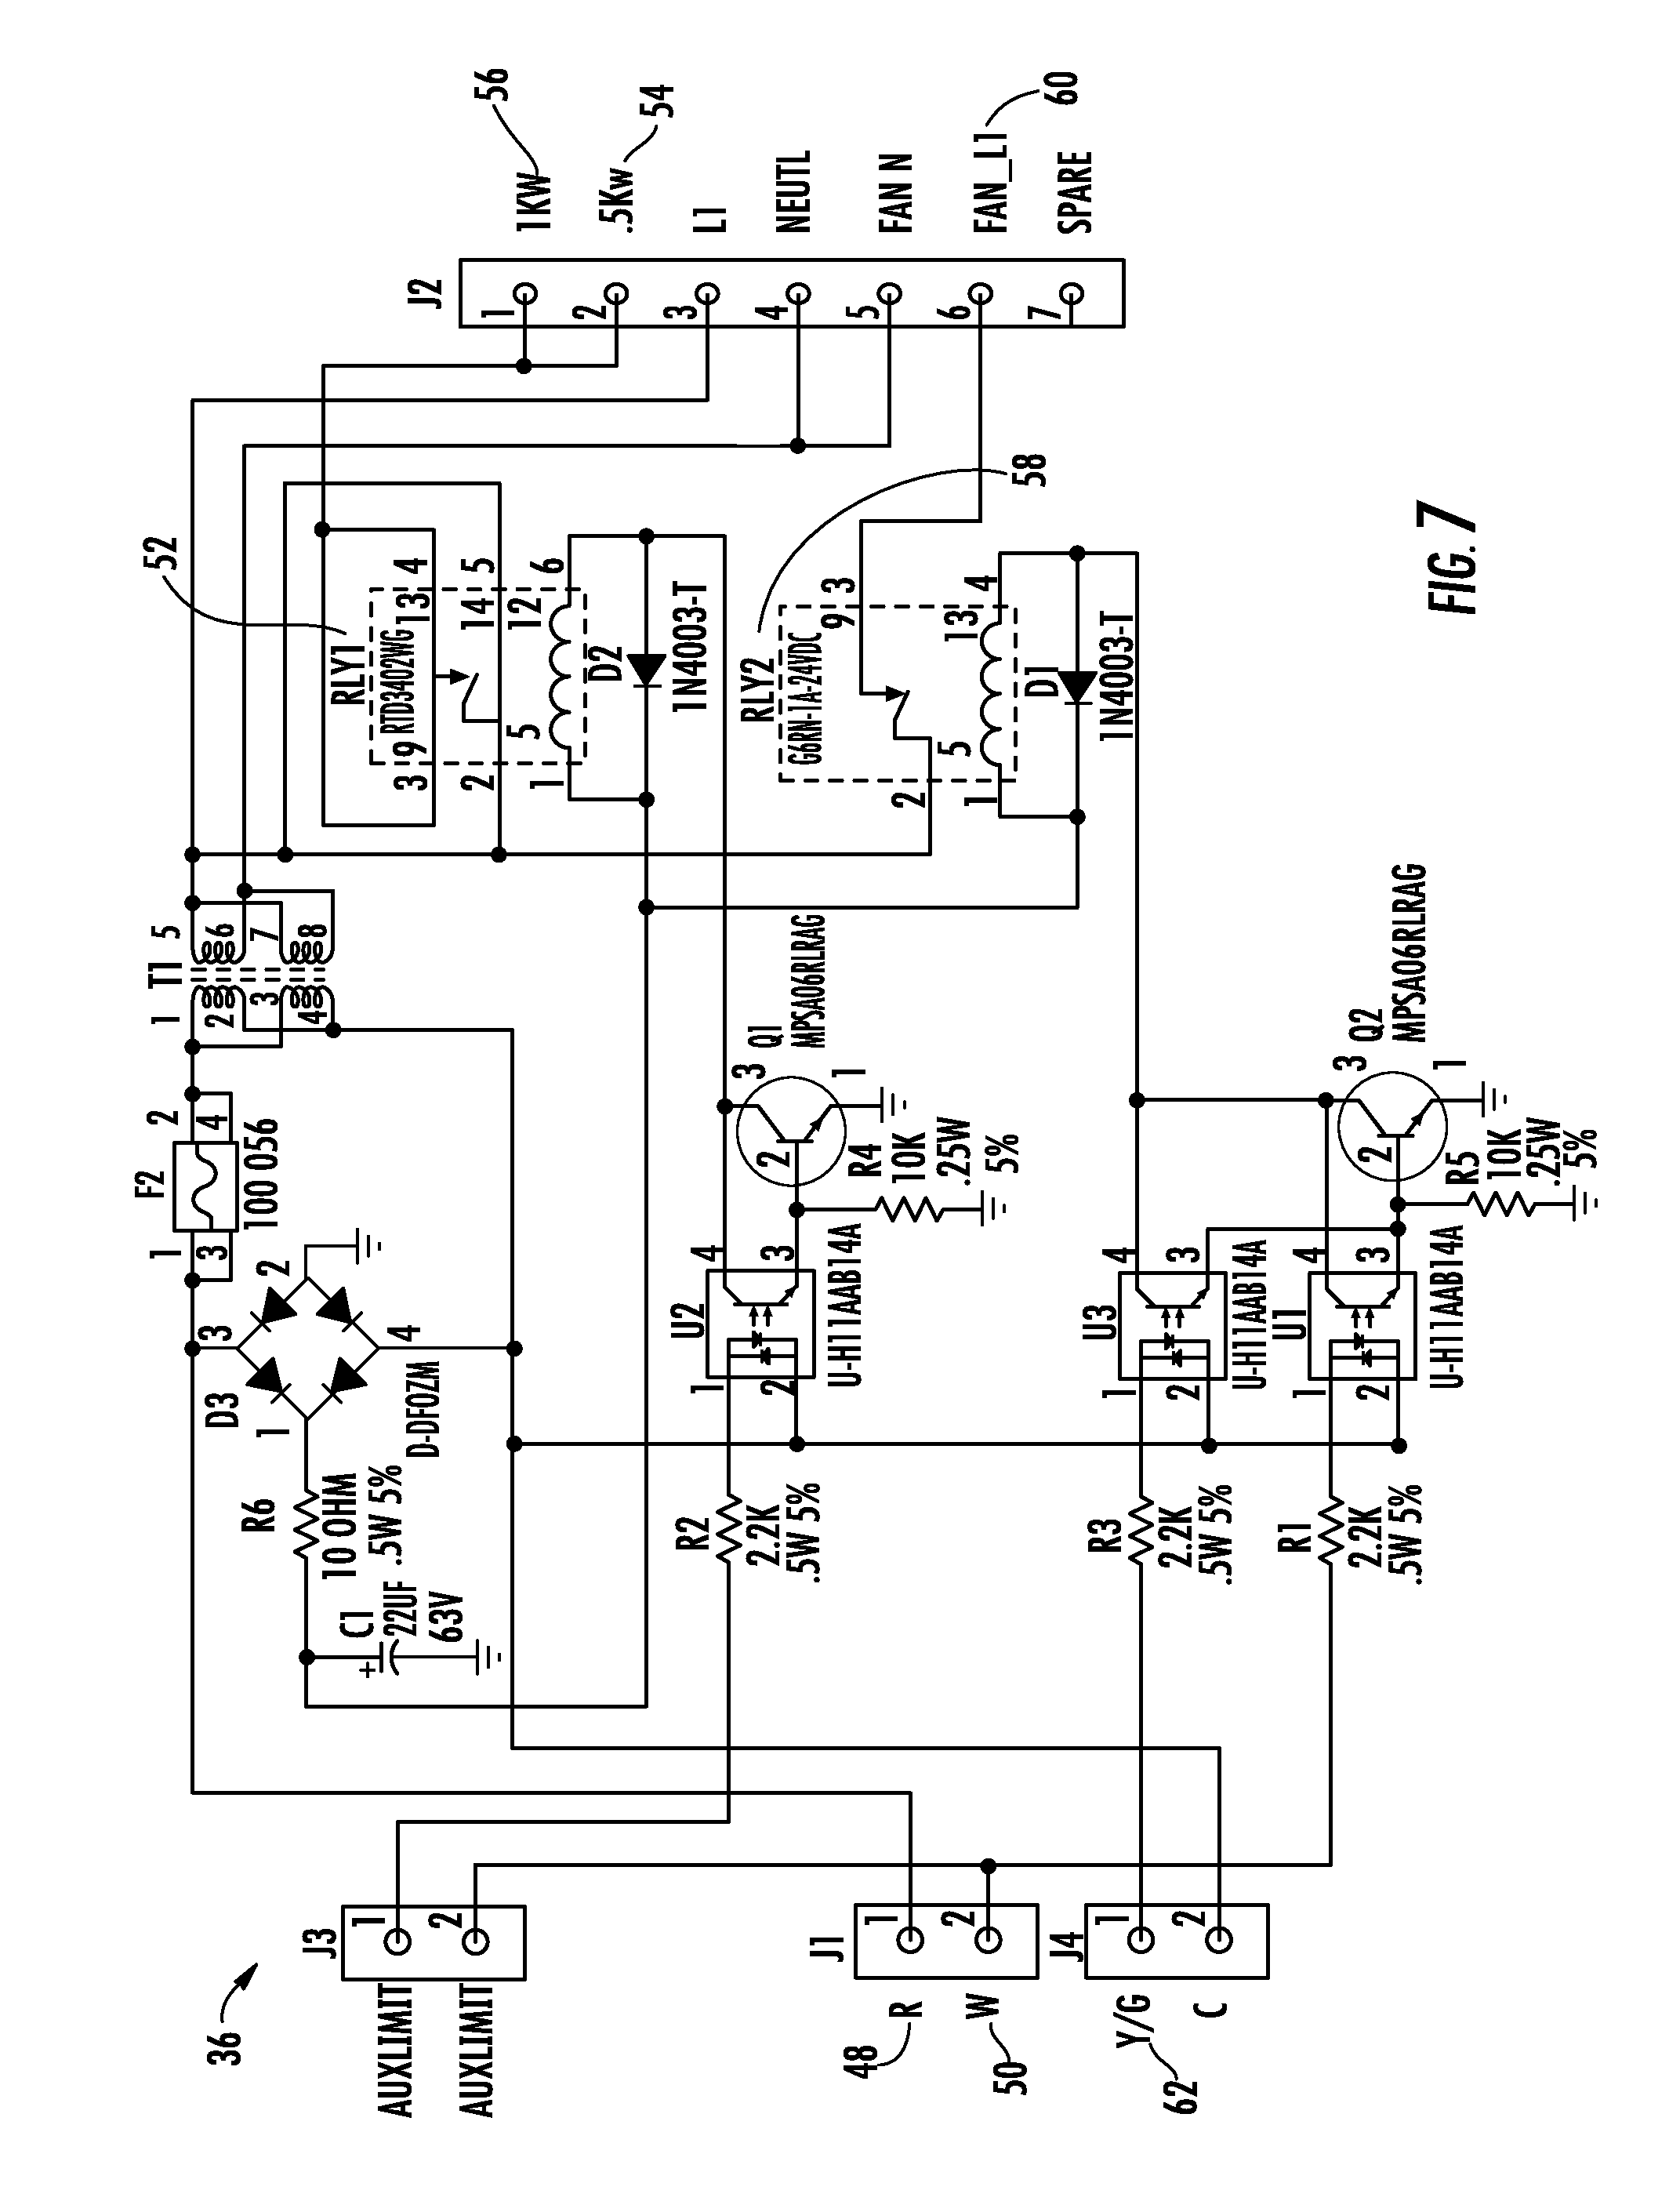 Honeywell Chronotherm Iv Plus Wiring Diagram Circuit And 111 T8611 44 Thermostat T8082